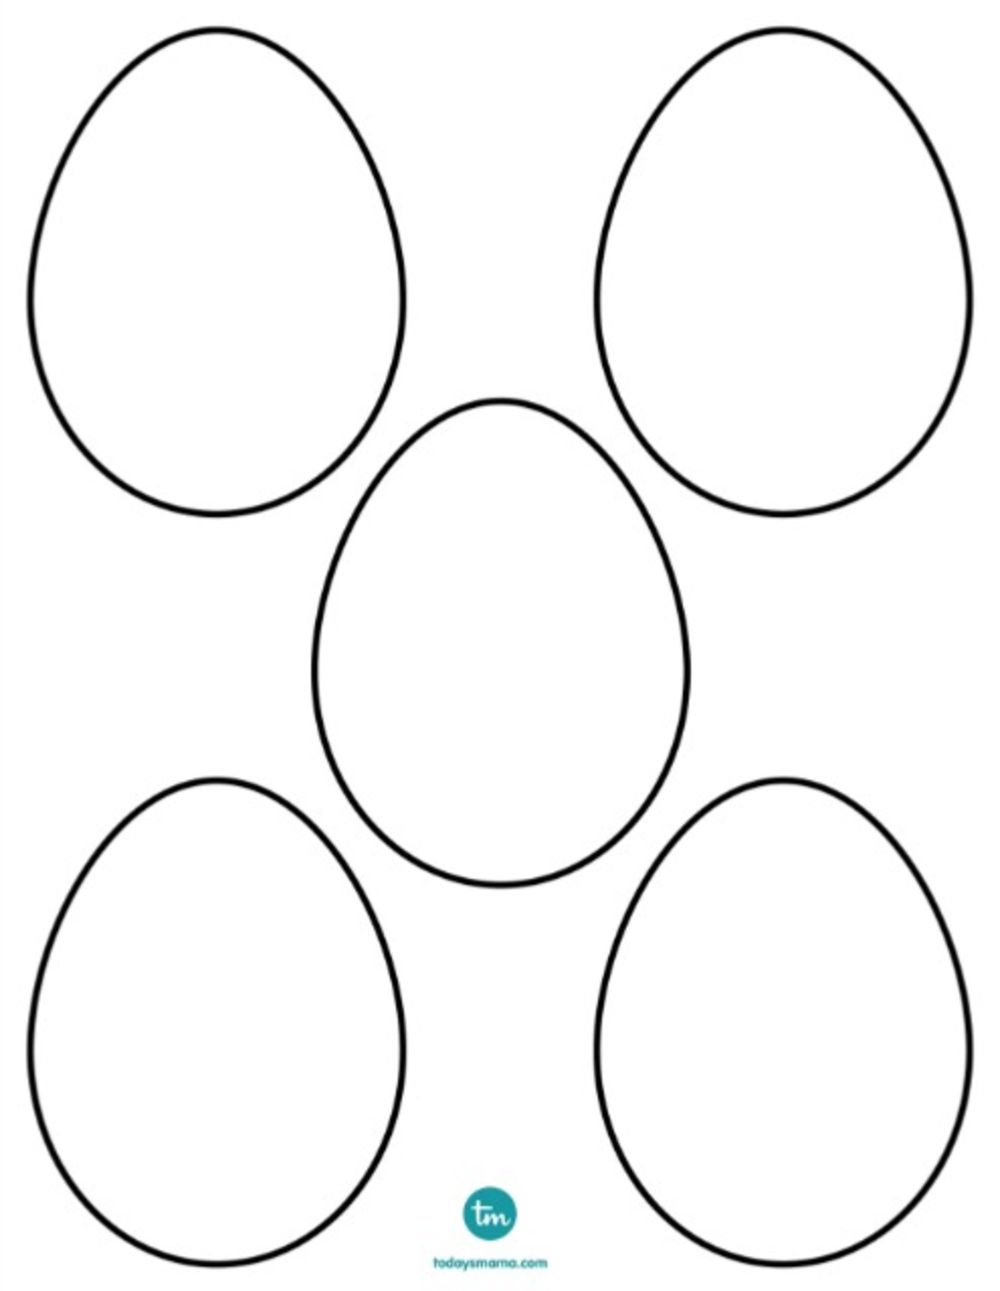 blank egg coloring pages - photo#23